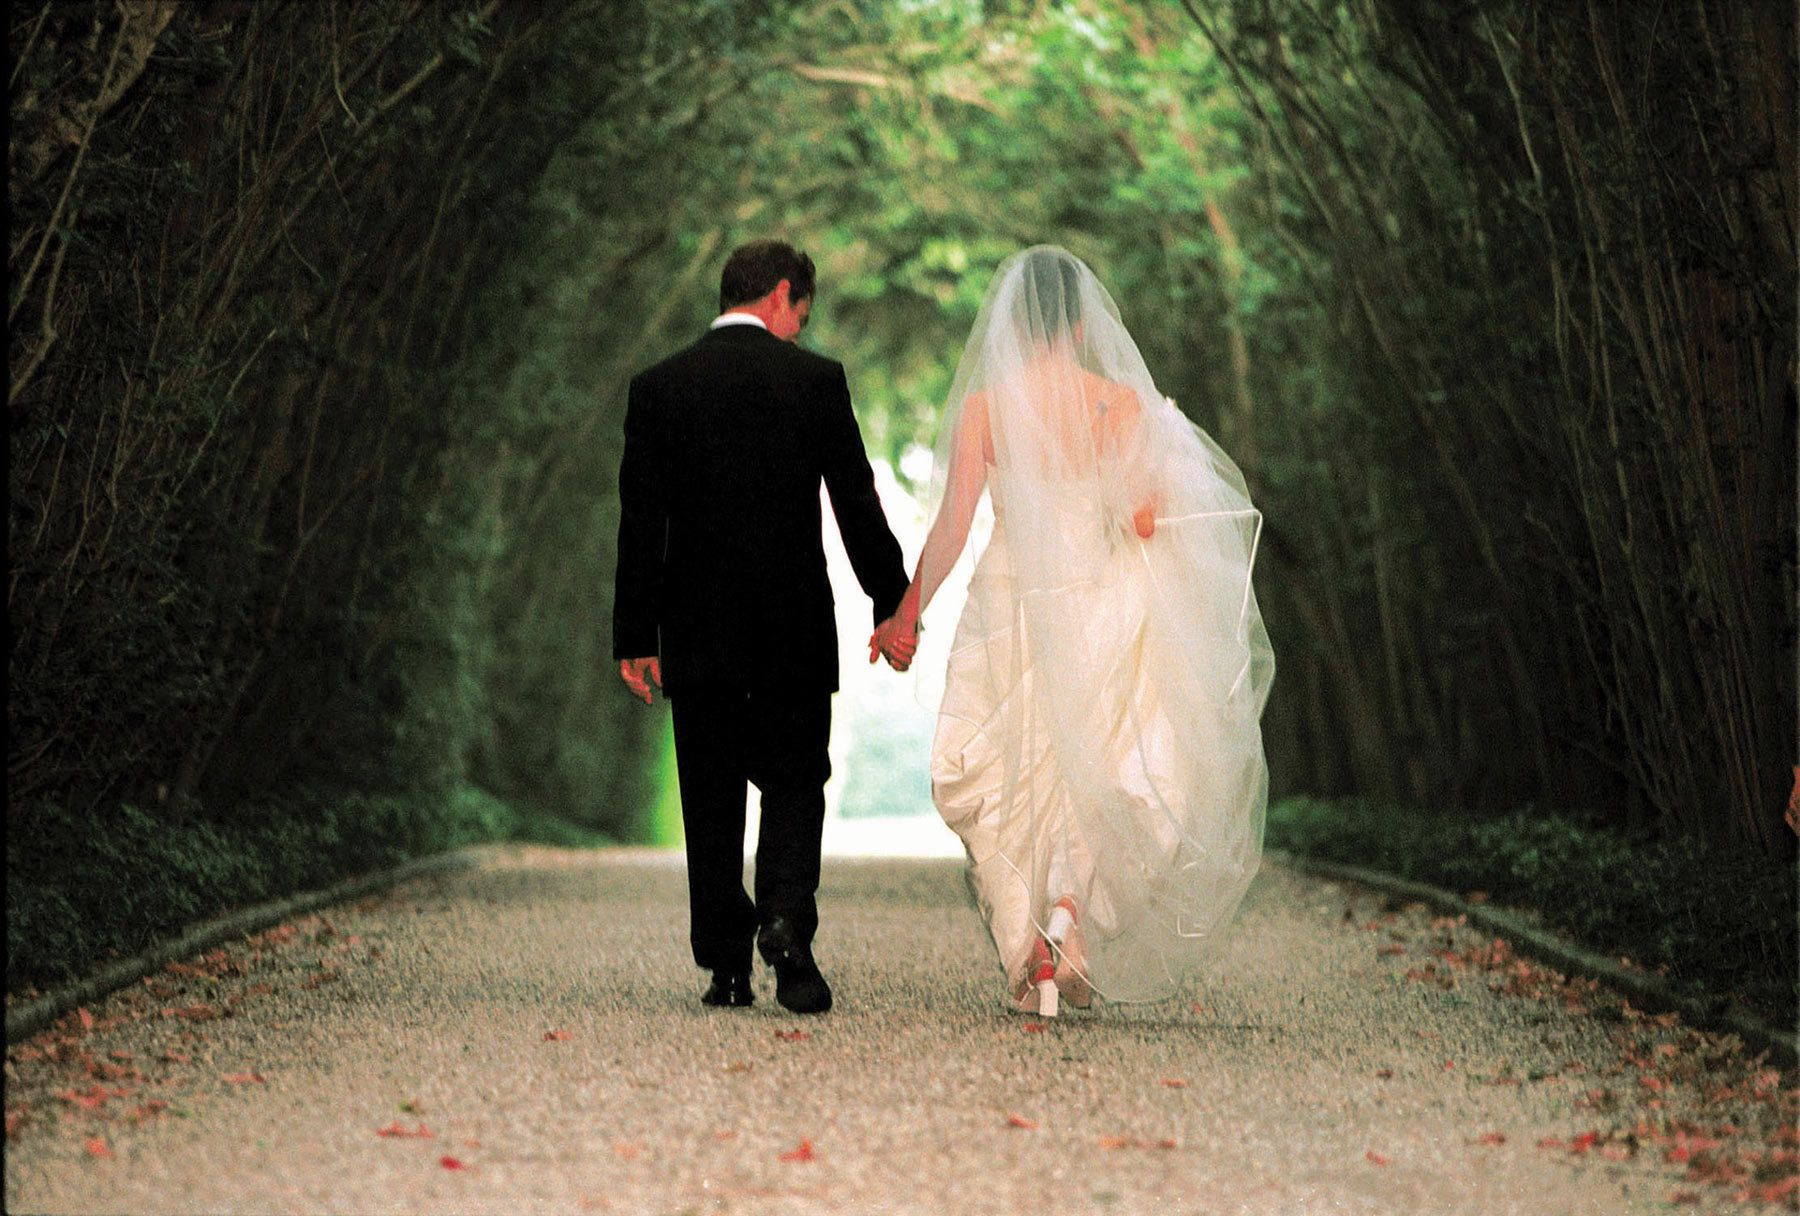 Bride And Groom Walking Wedding Pics Pinterest Wedding Pics Engagement And Wedding